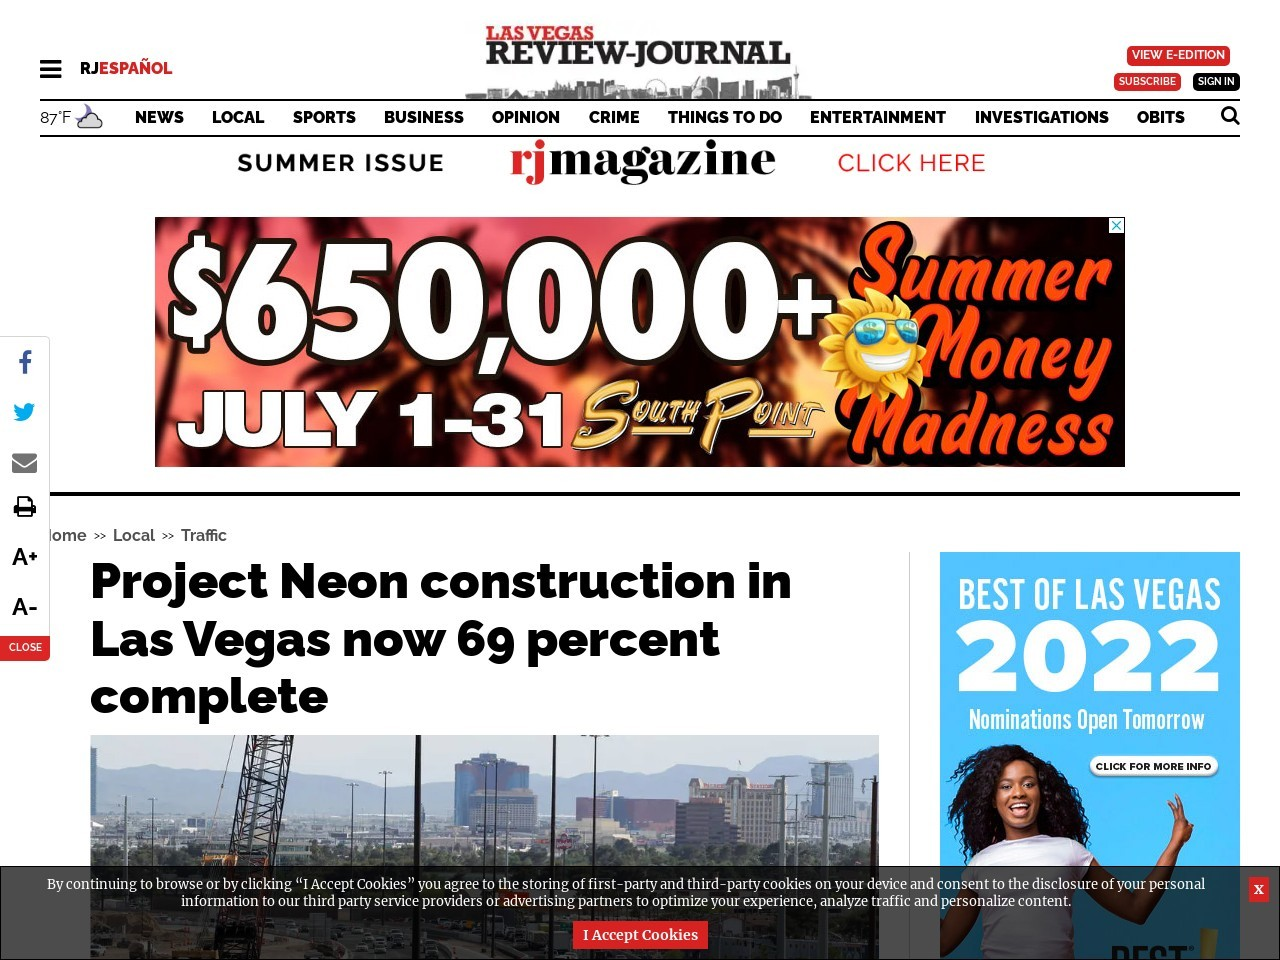 Project Neon construction in Las Vegas now 69 percent complete